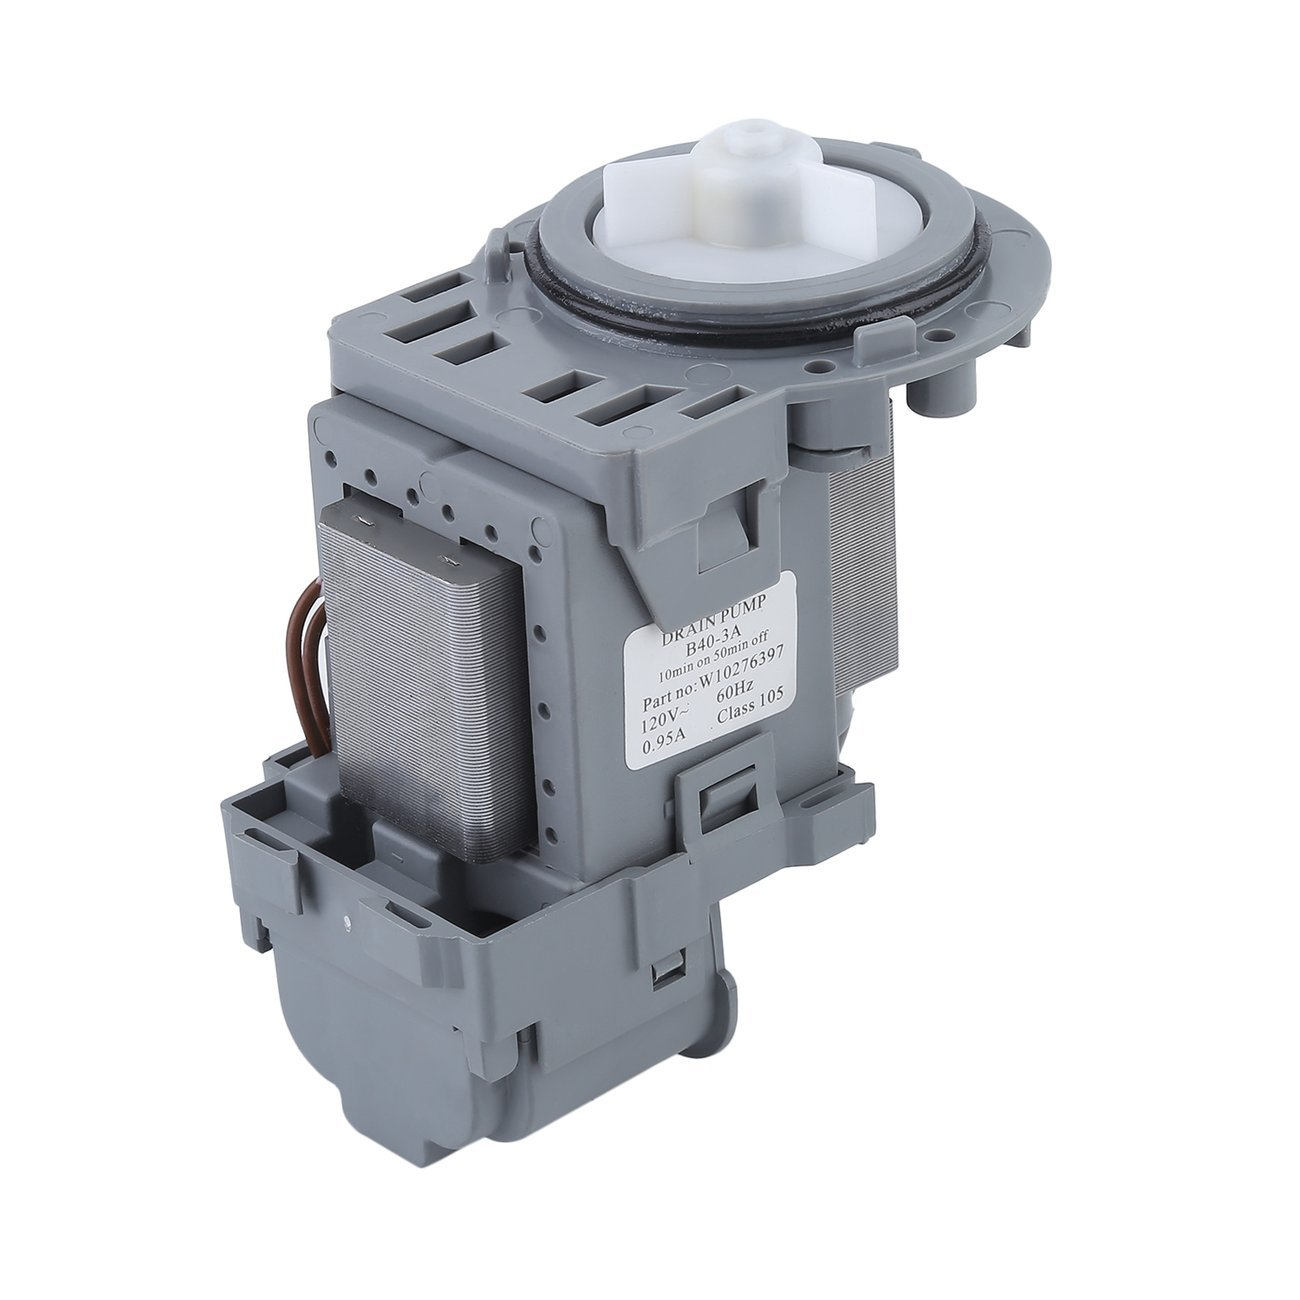 Dooret Professional Washing Machine Water Drain Pump Motor Washer For Whirlpool Replaces Part Number W10130913